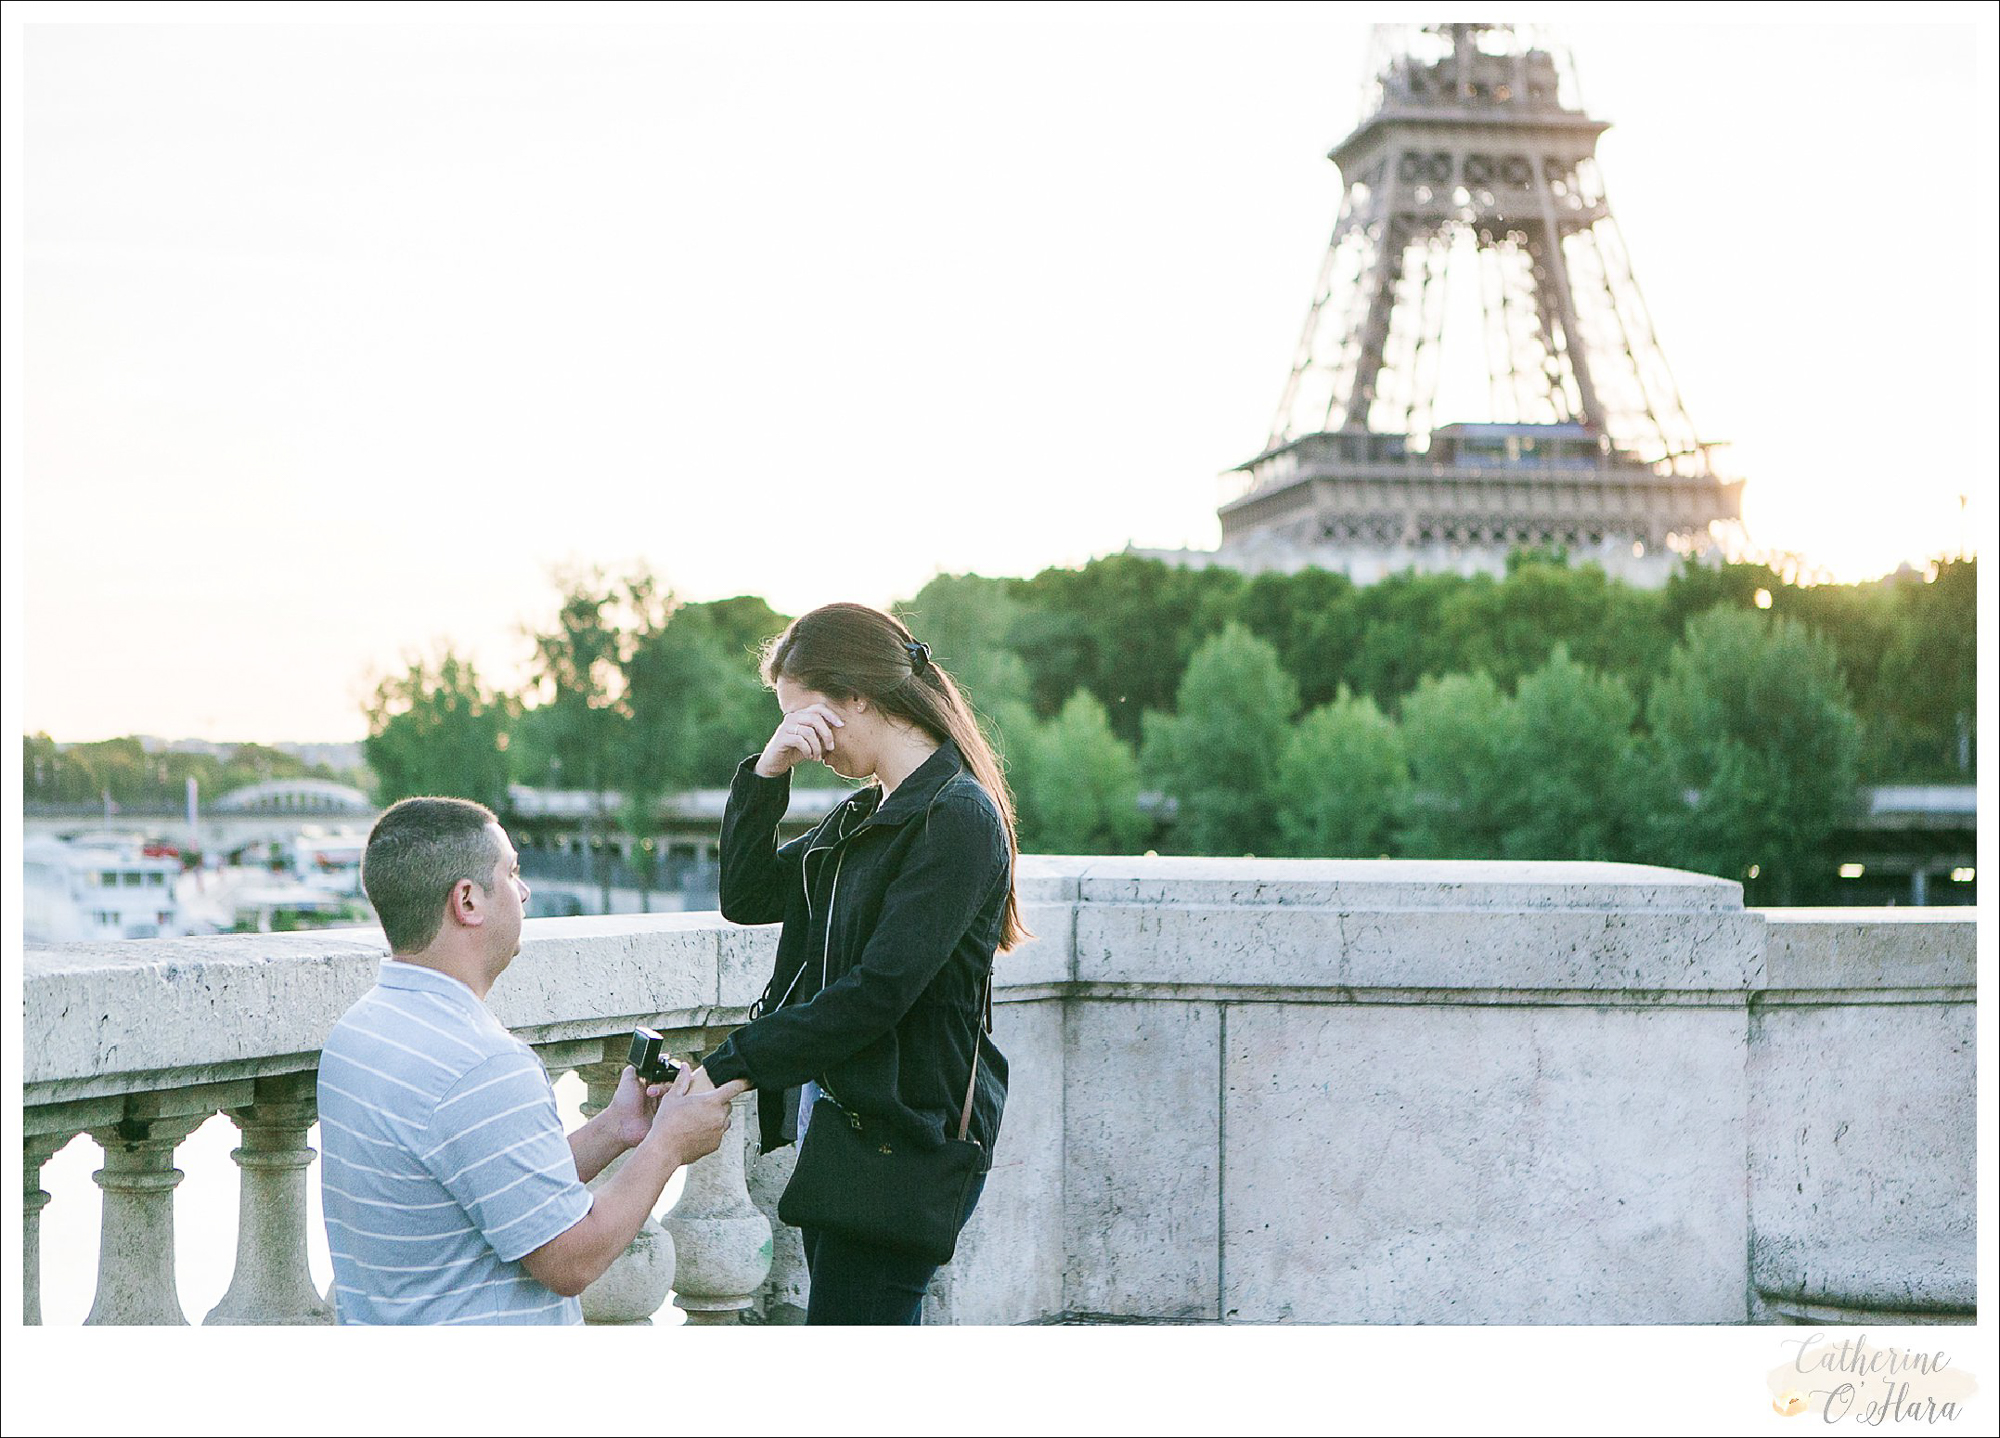 surprise proposal engagement photographer paris france-16.jpg